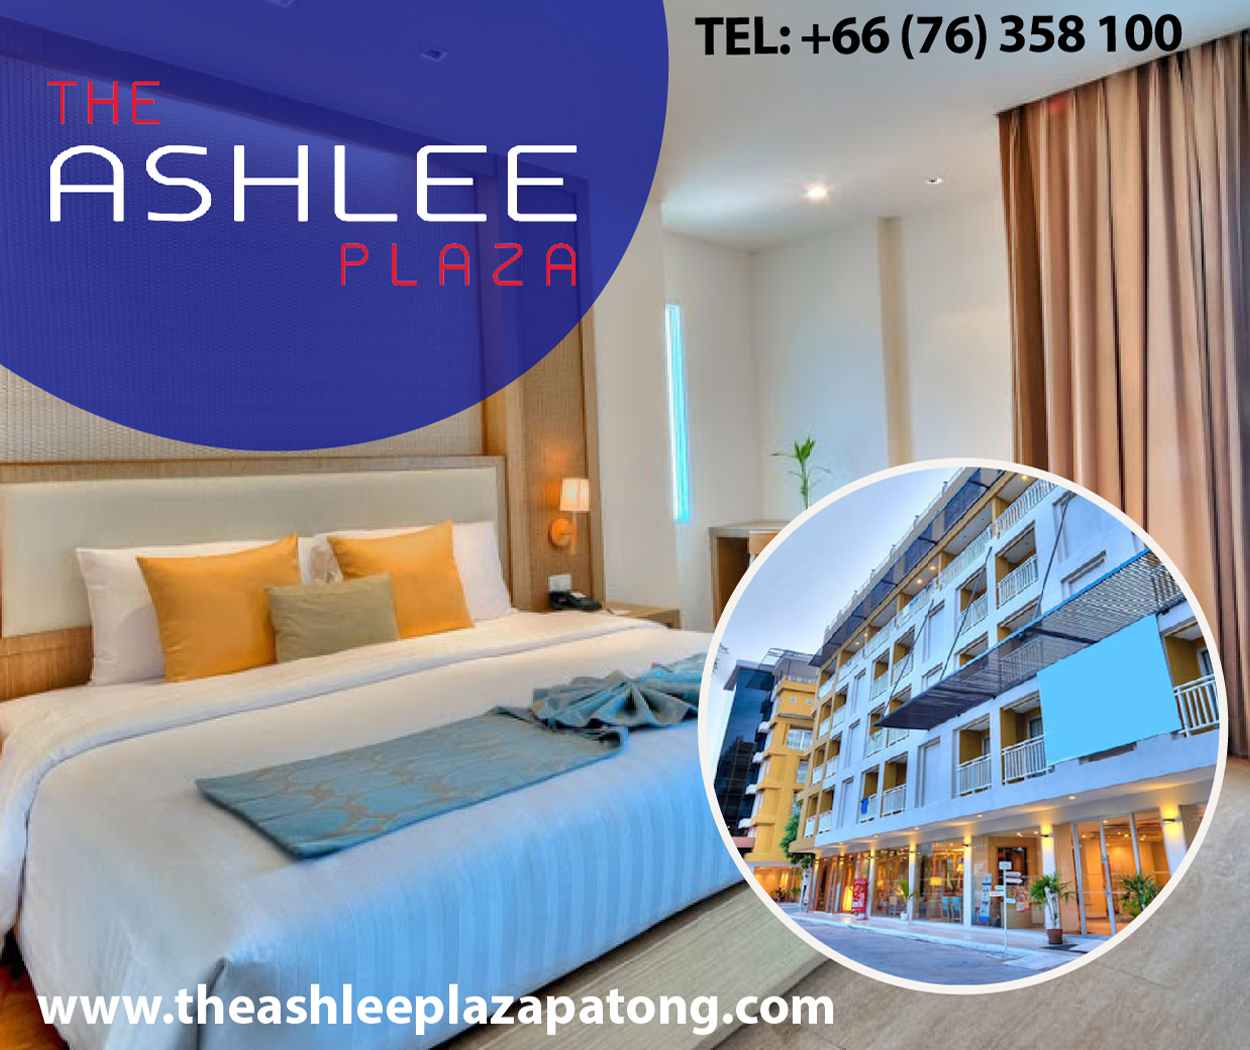 The Ashlee Plaza Phuket